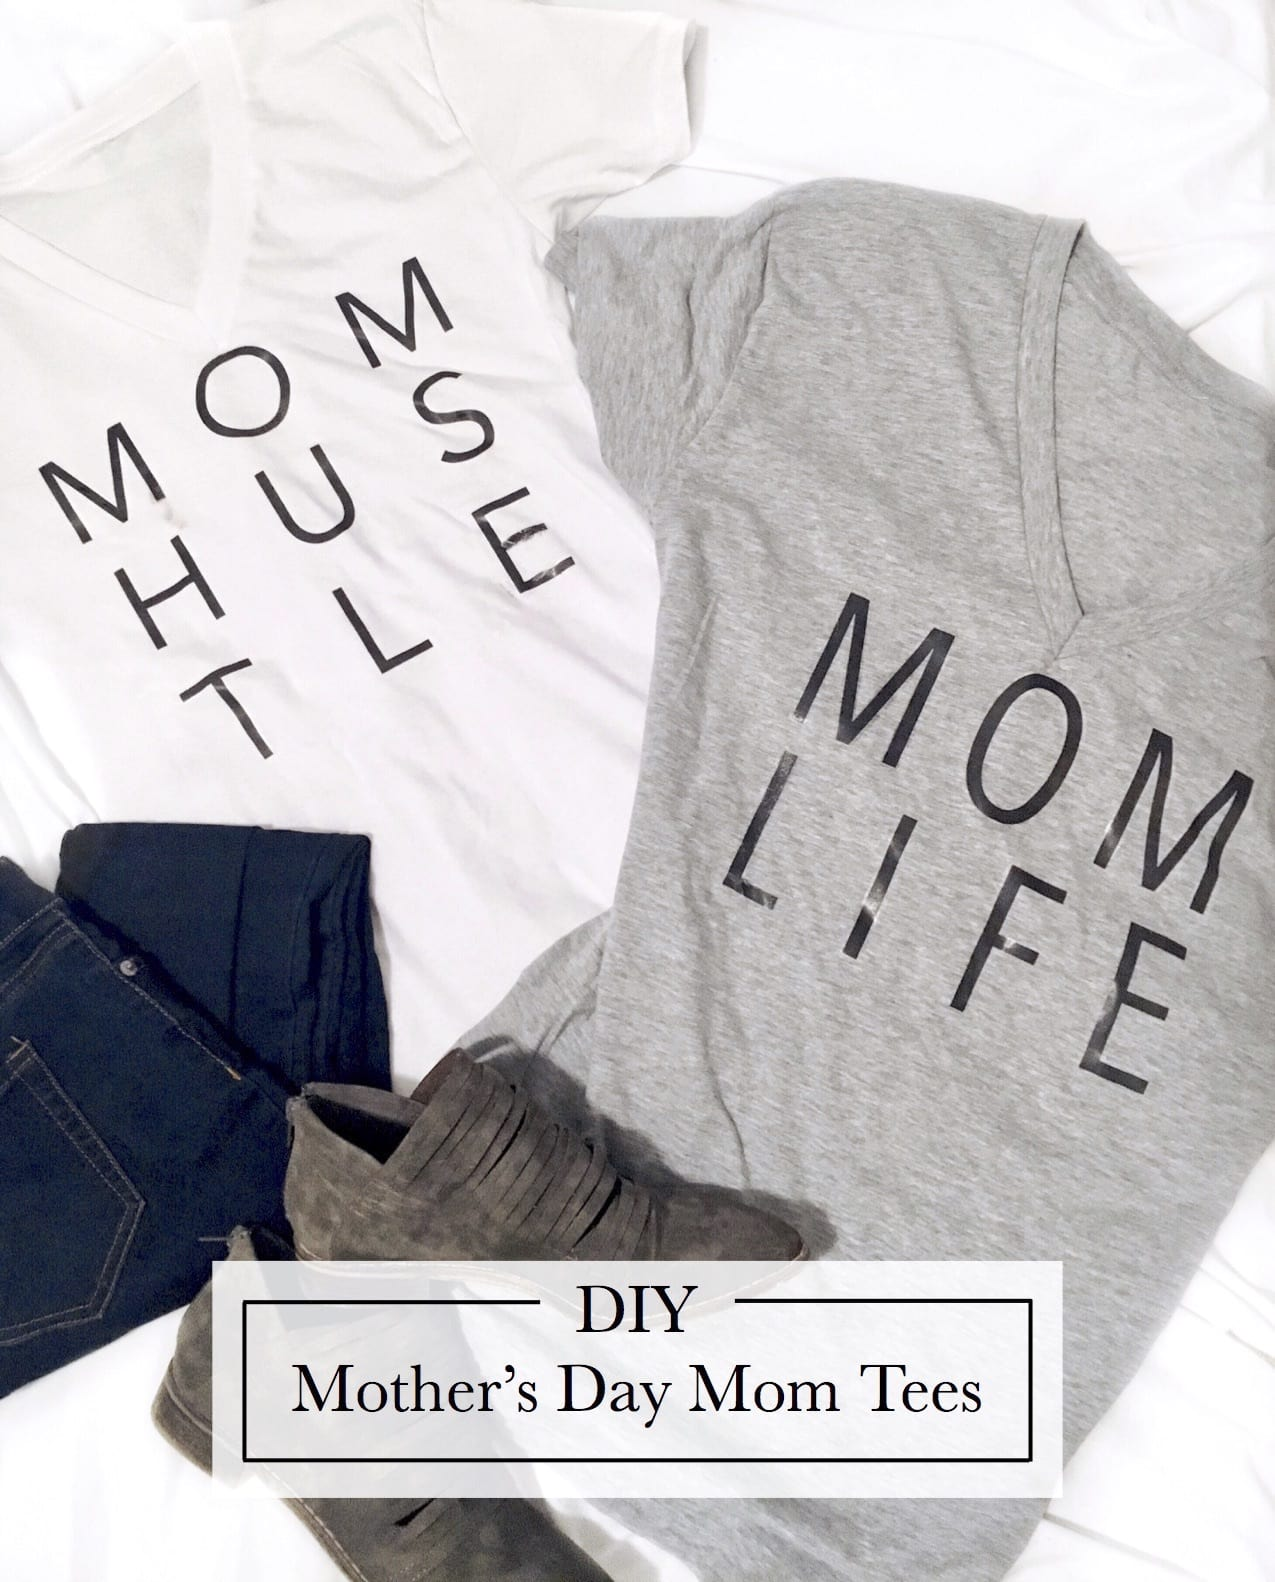 DIY Mother's Day Mom Tees that are #MomGoals